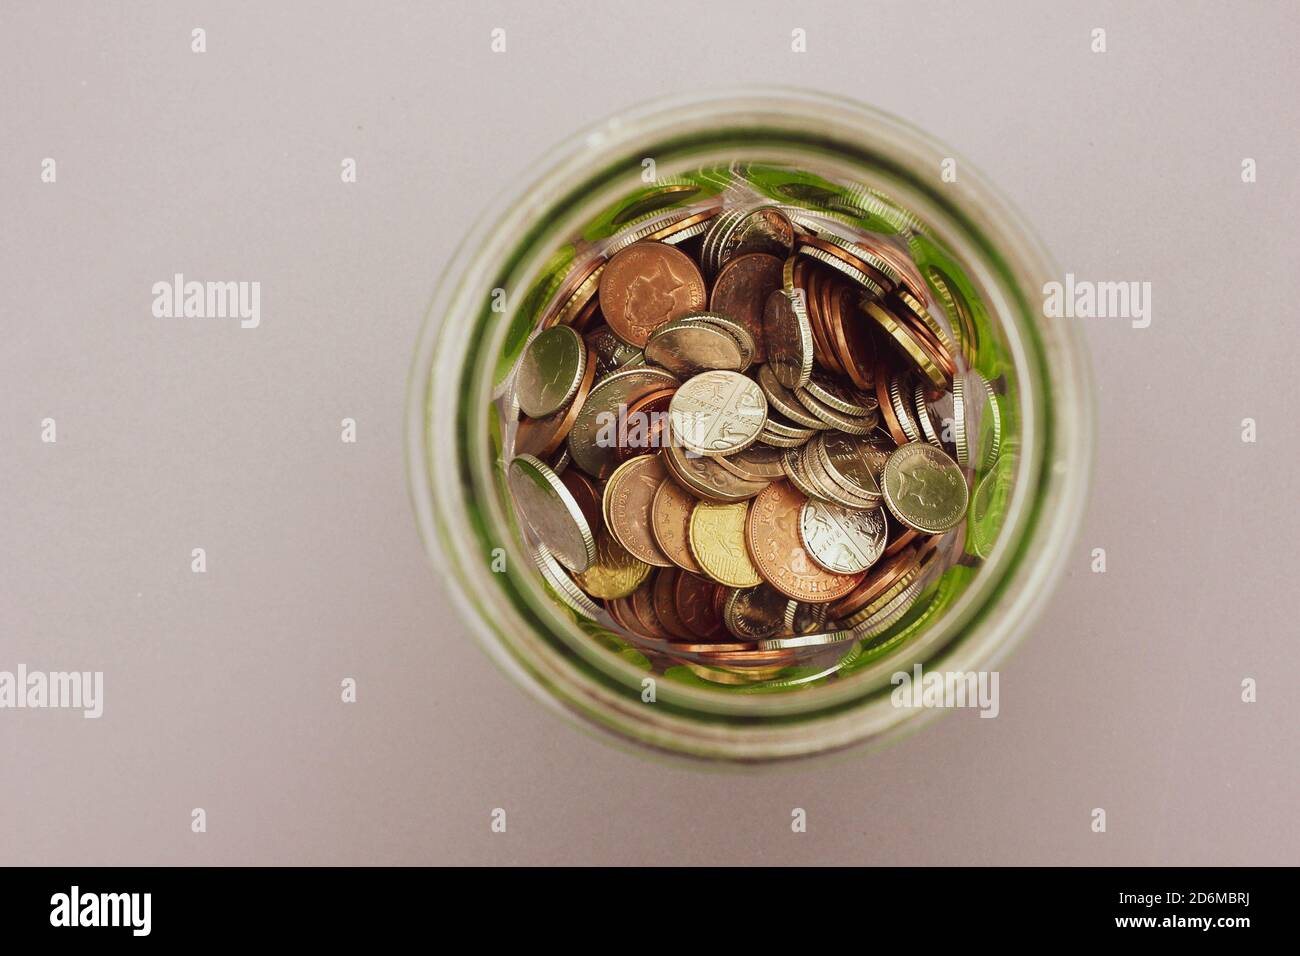 Money jar full of coins. Taken from above. Space for copy. Stock Photo